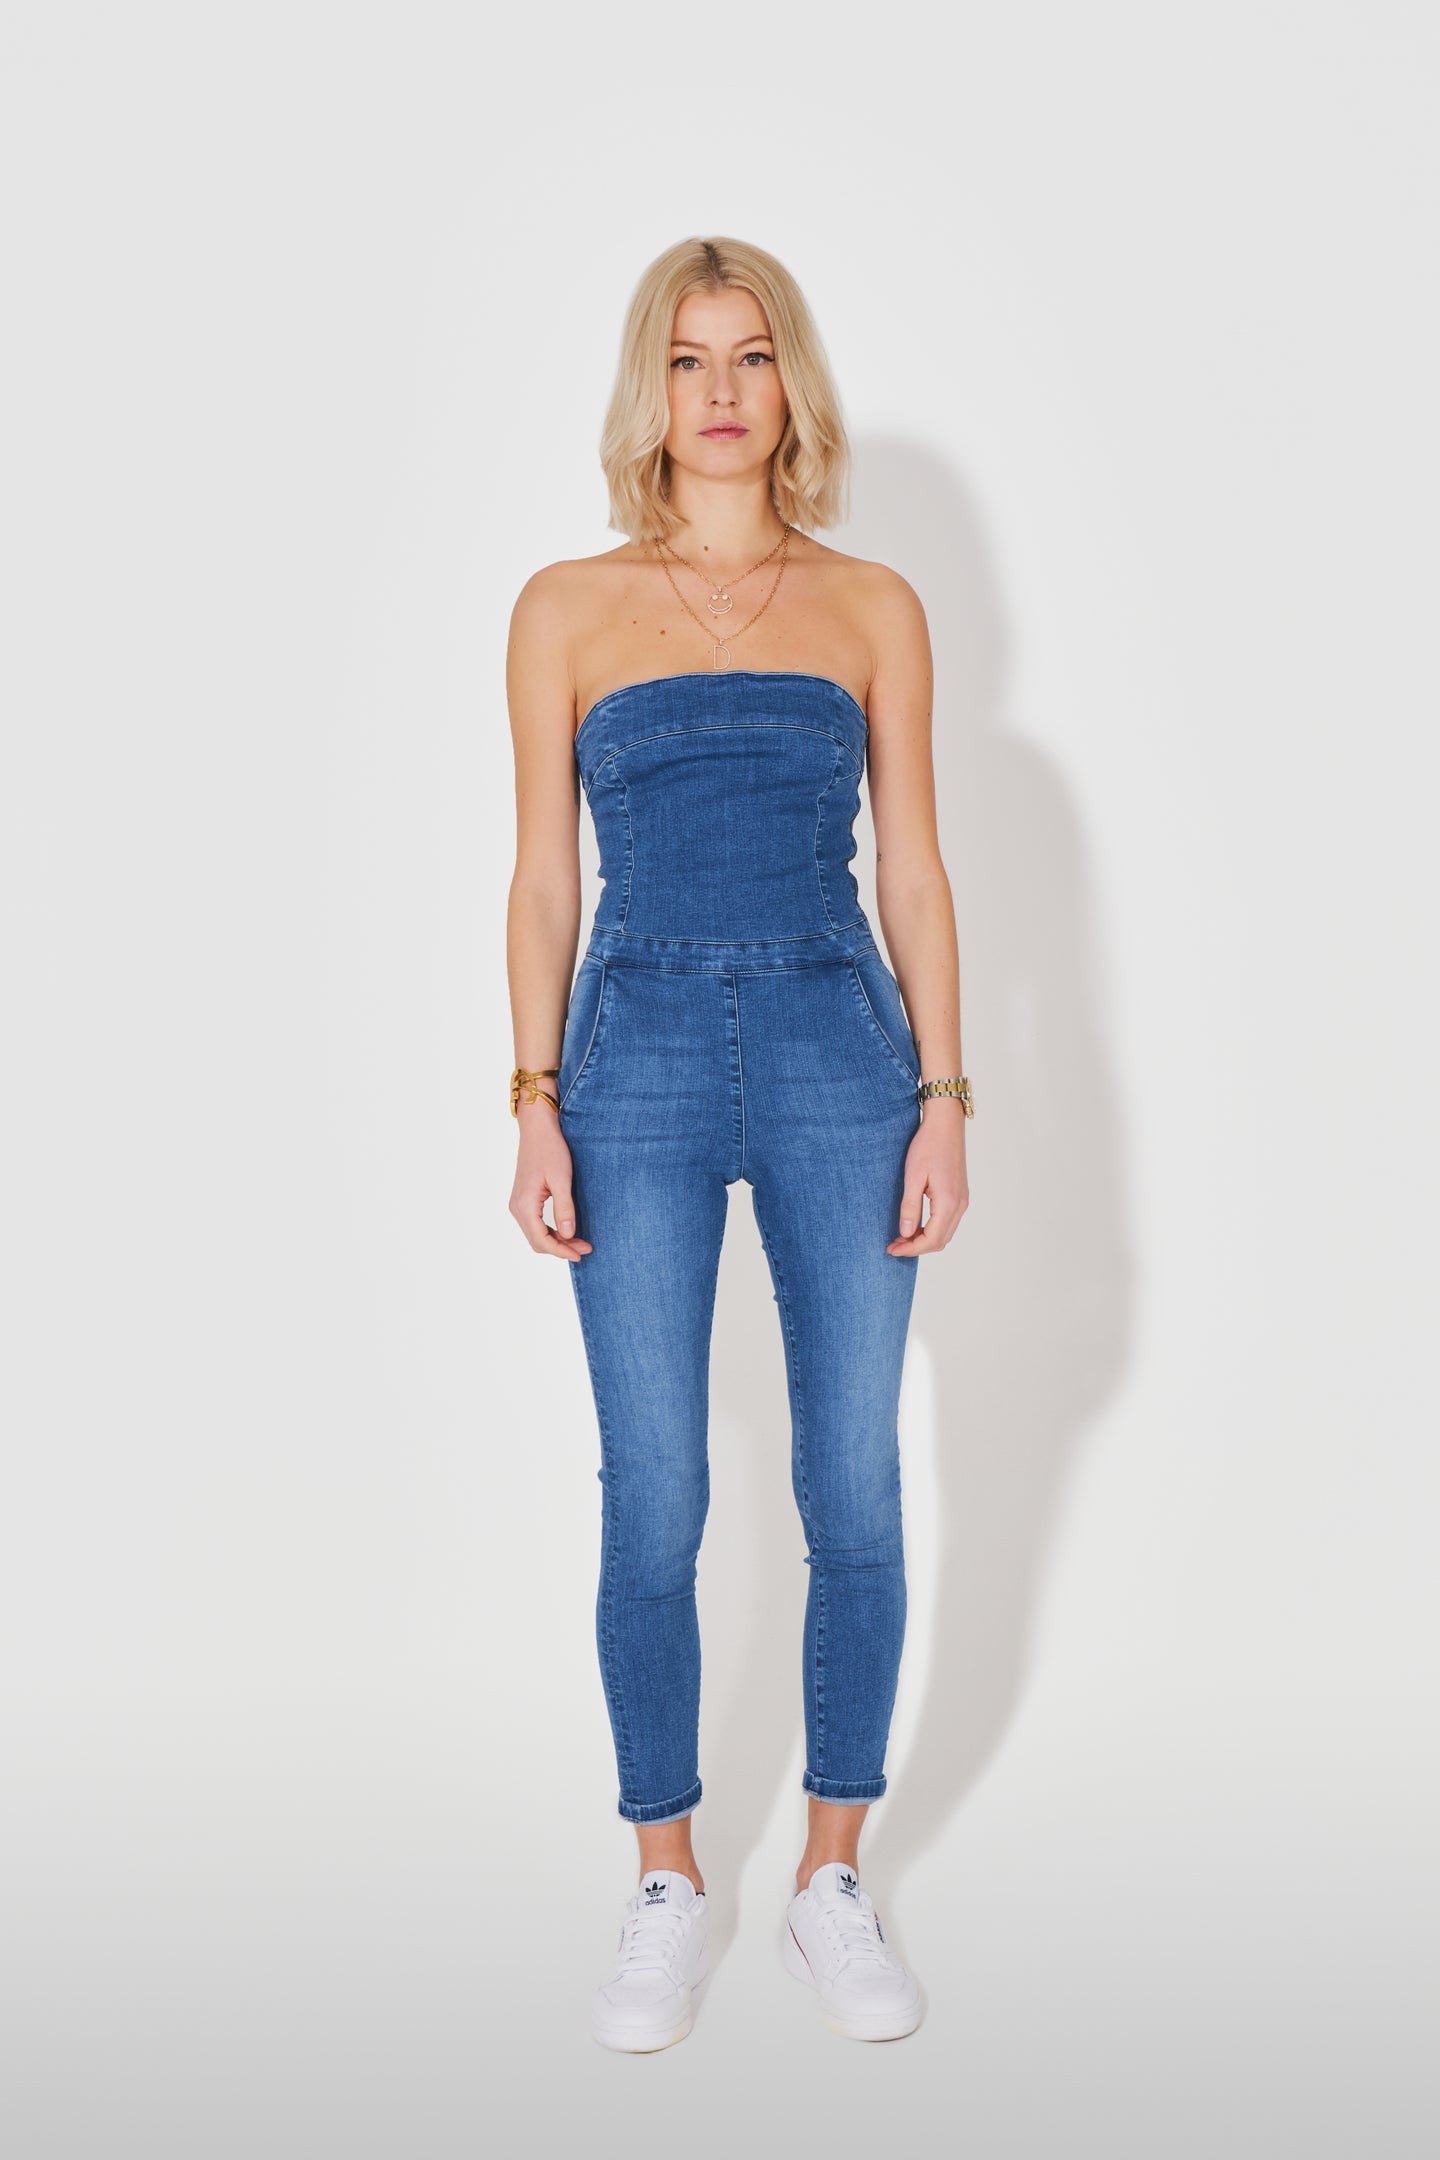 Olivia The Strapless Jumpsuit - You're The One That I Want